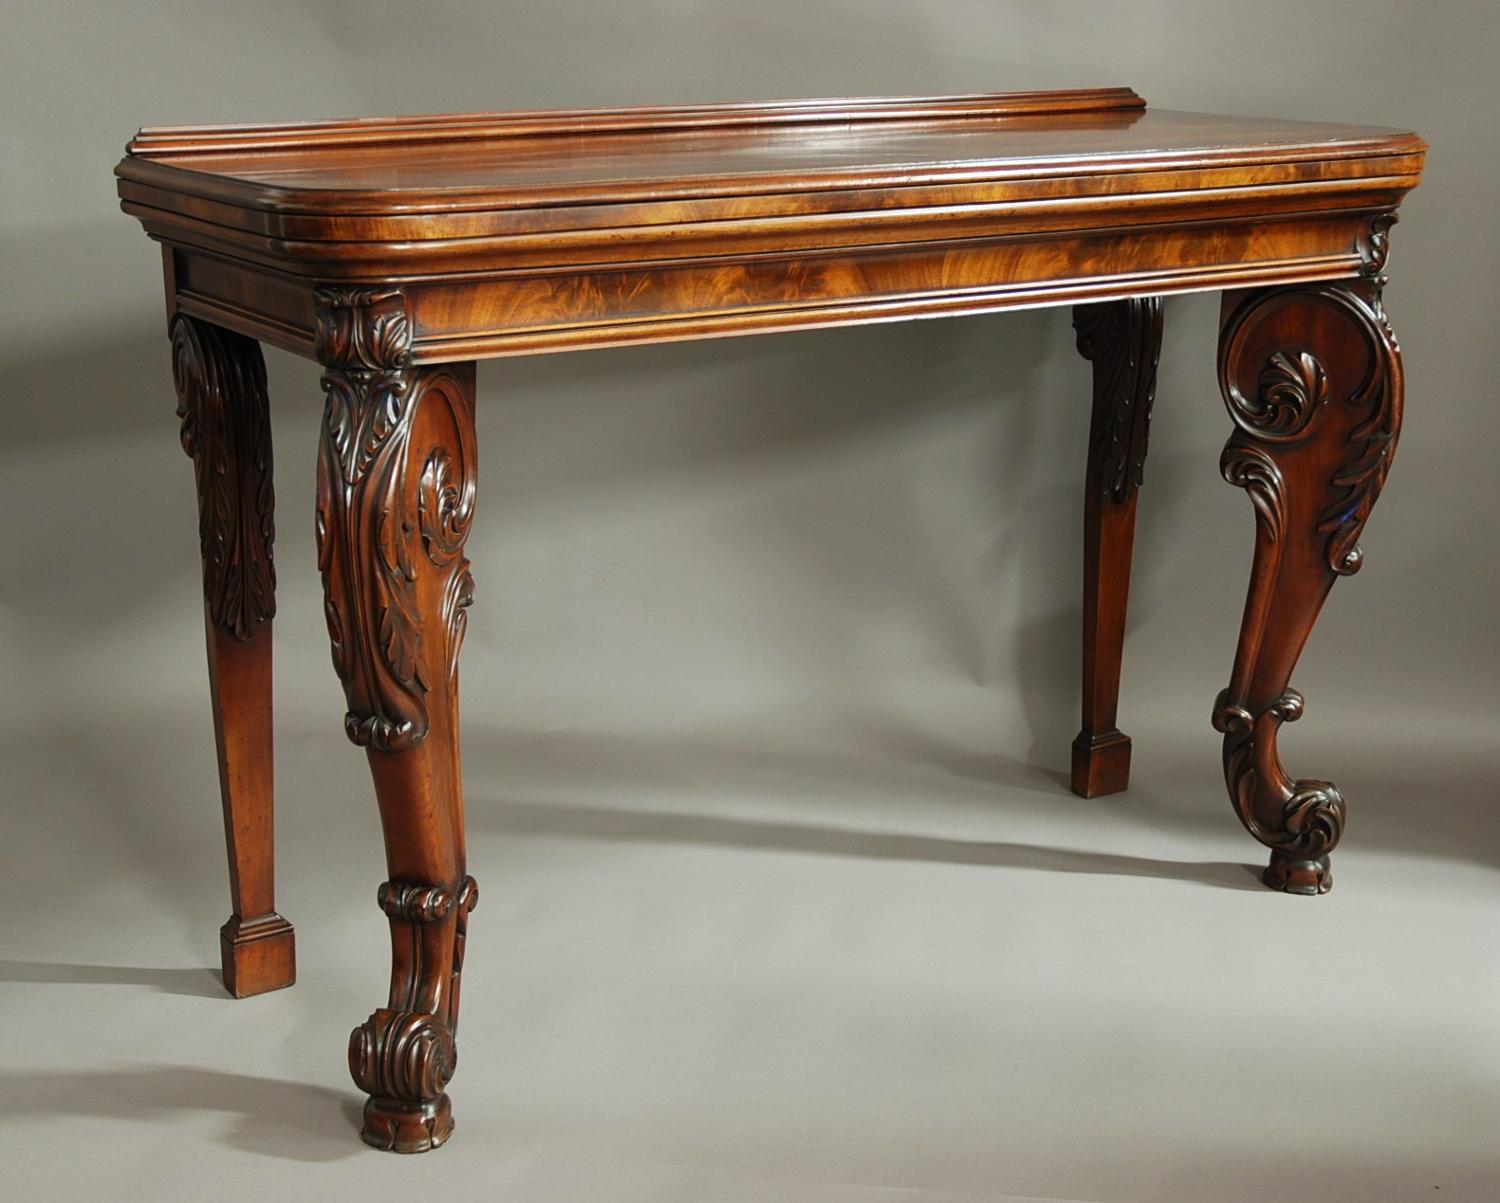 Superb quality William IV mahogany console table in Gillows manner